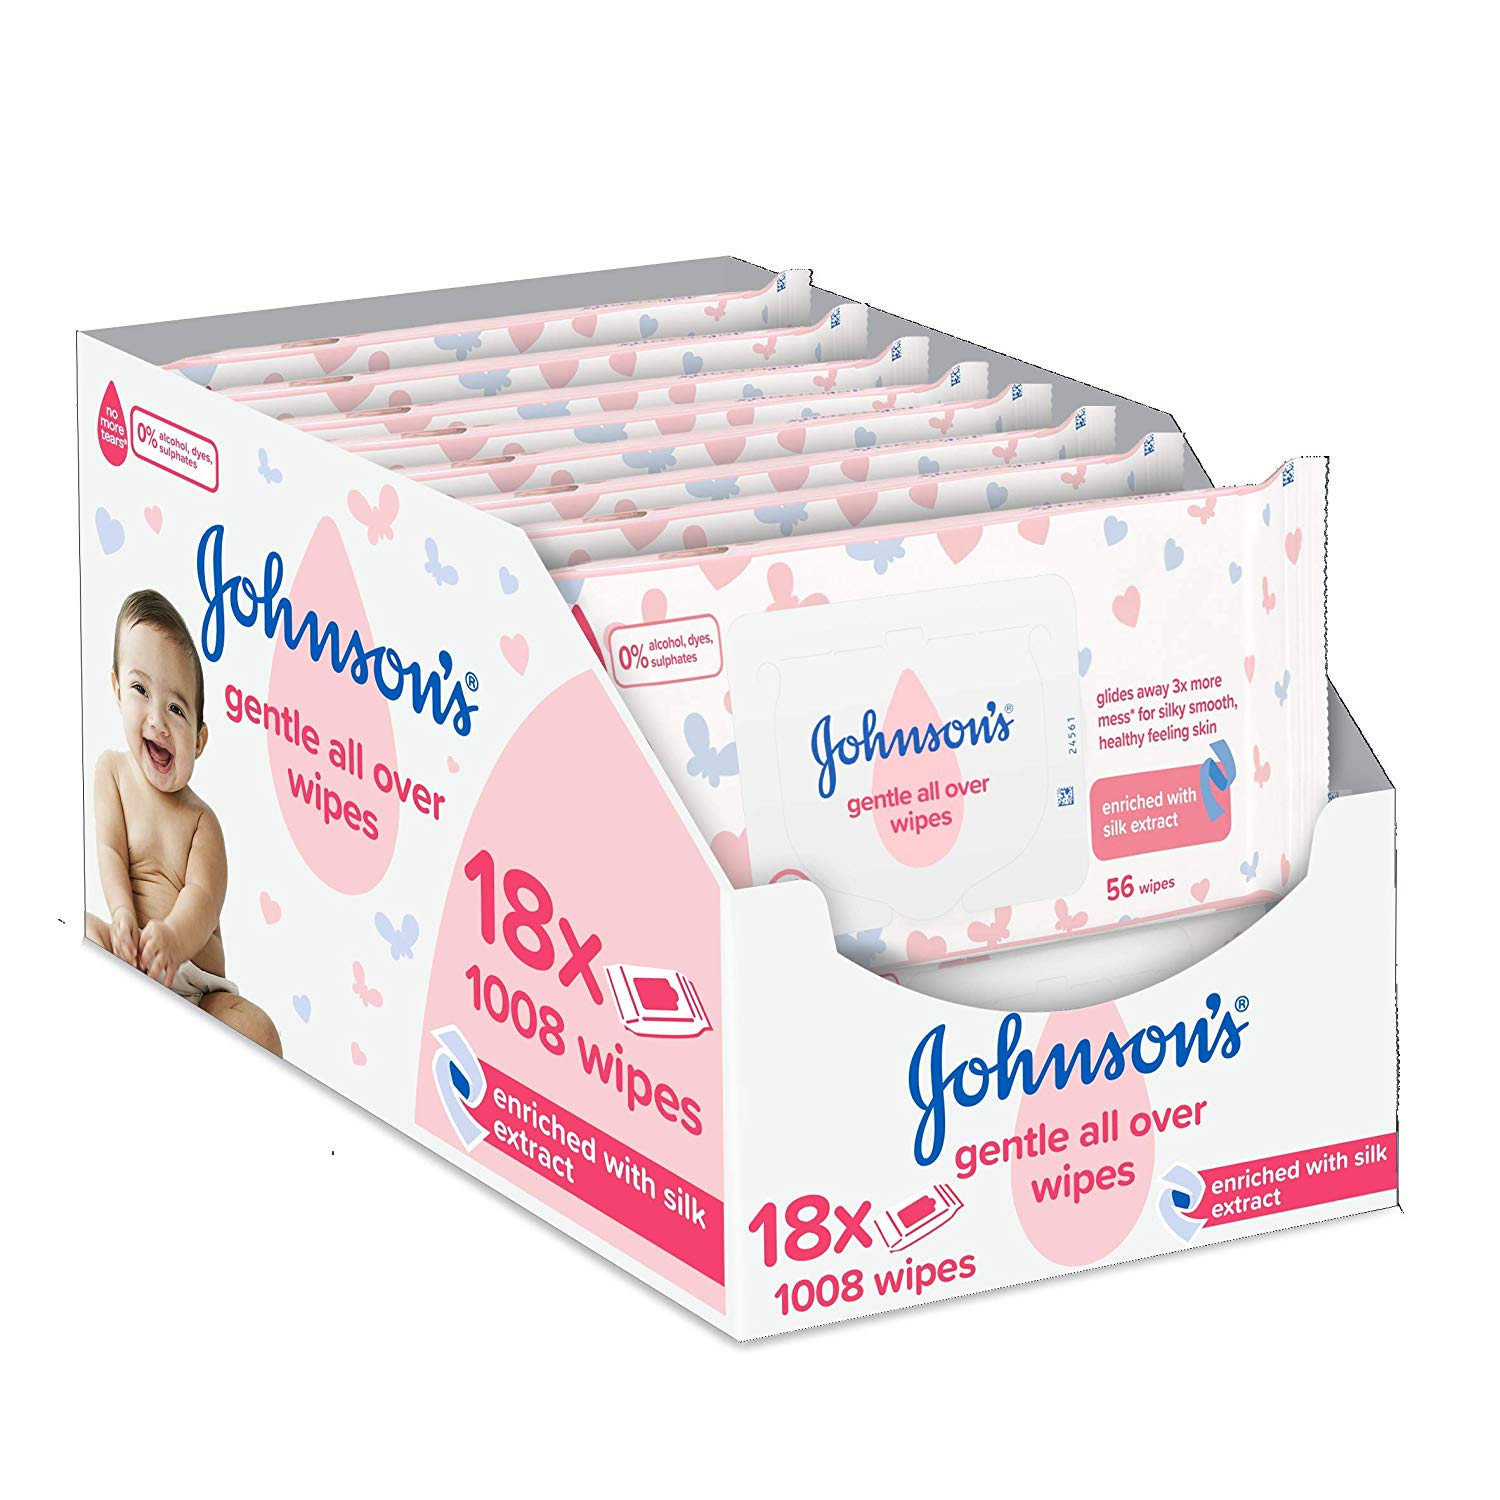 Johnson's Baby Gentle Wipes, Pack of 18 (Total 1008 Wipes)